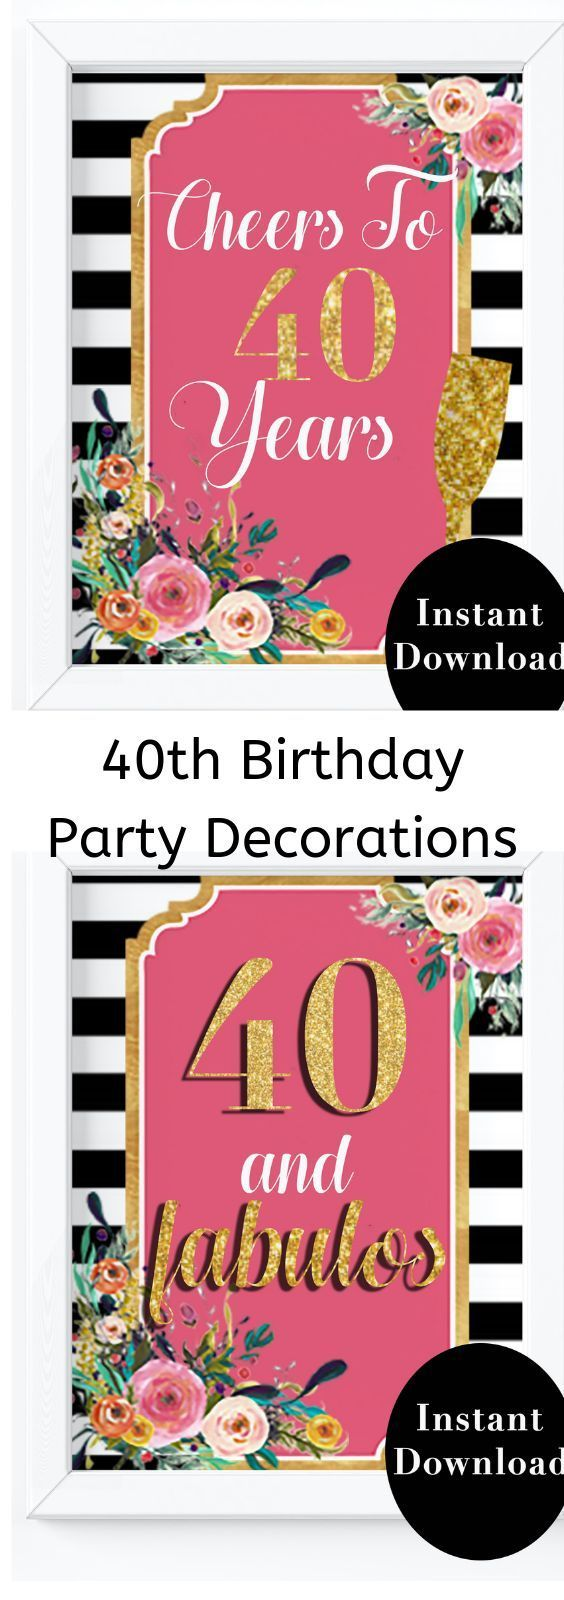 40th Birthday Party Decorations- 40 and Fabulous Birthday Sign #50thbirthdaypartydecorations